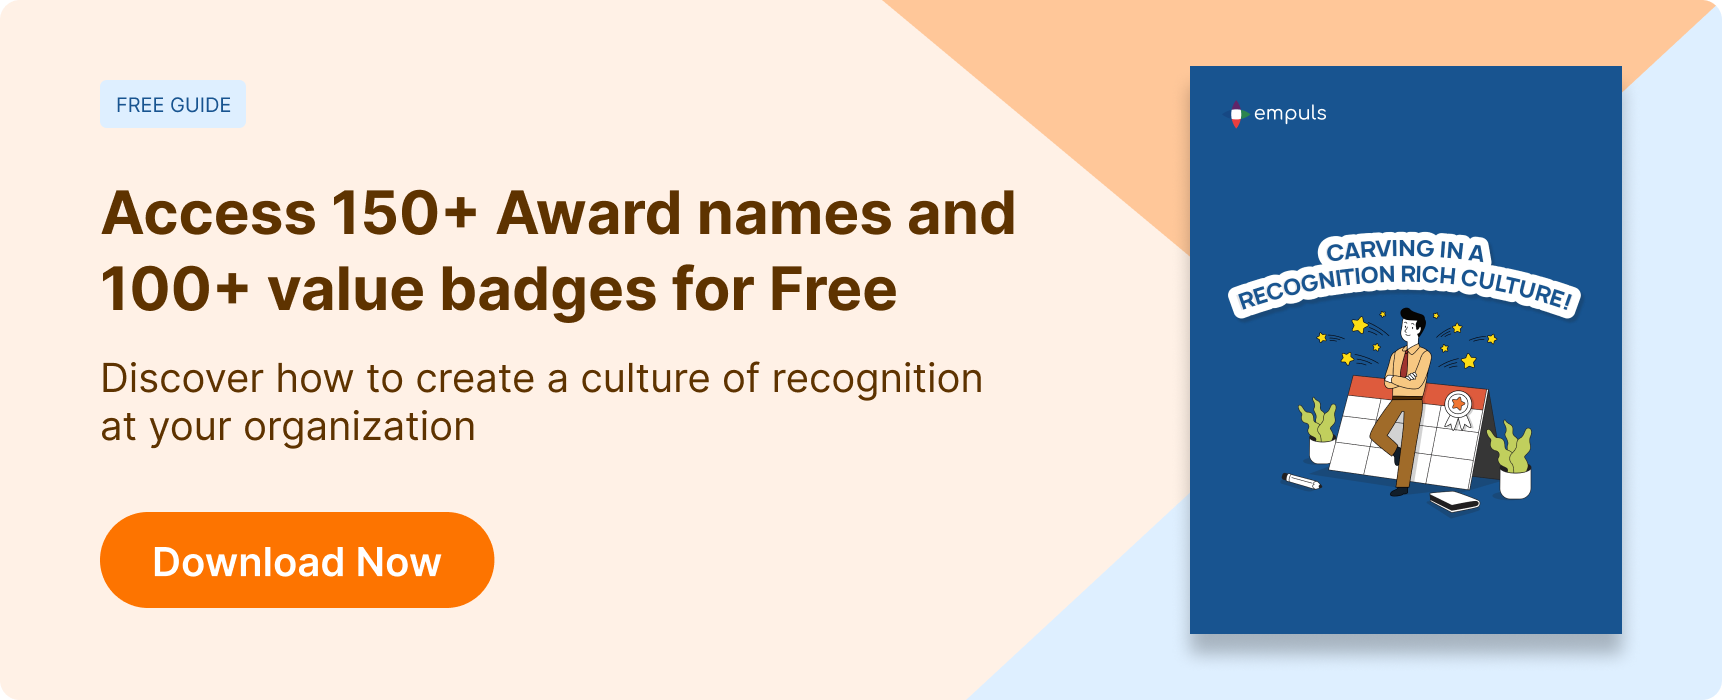 Download the guide to creating a culture of recognition in your organization